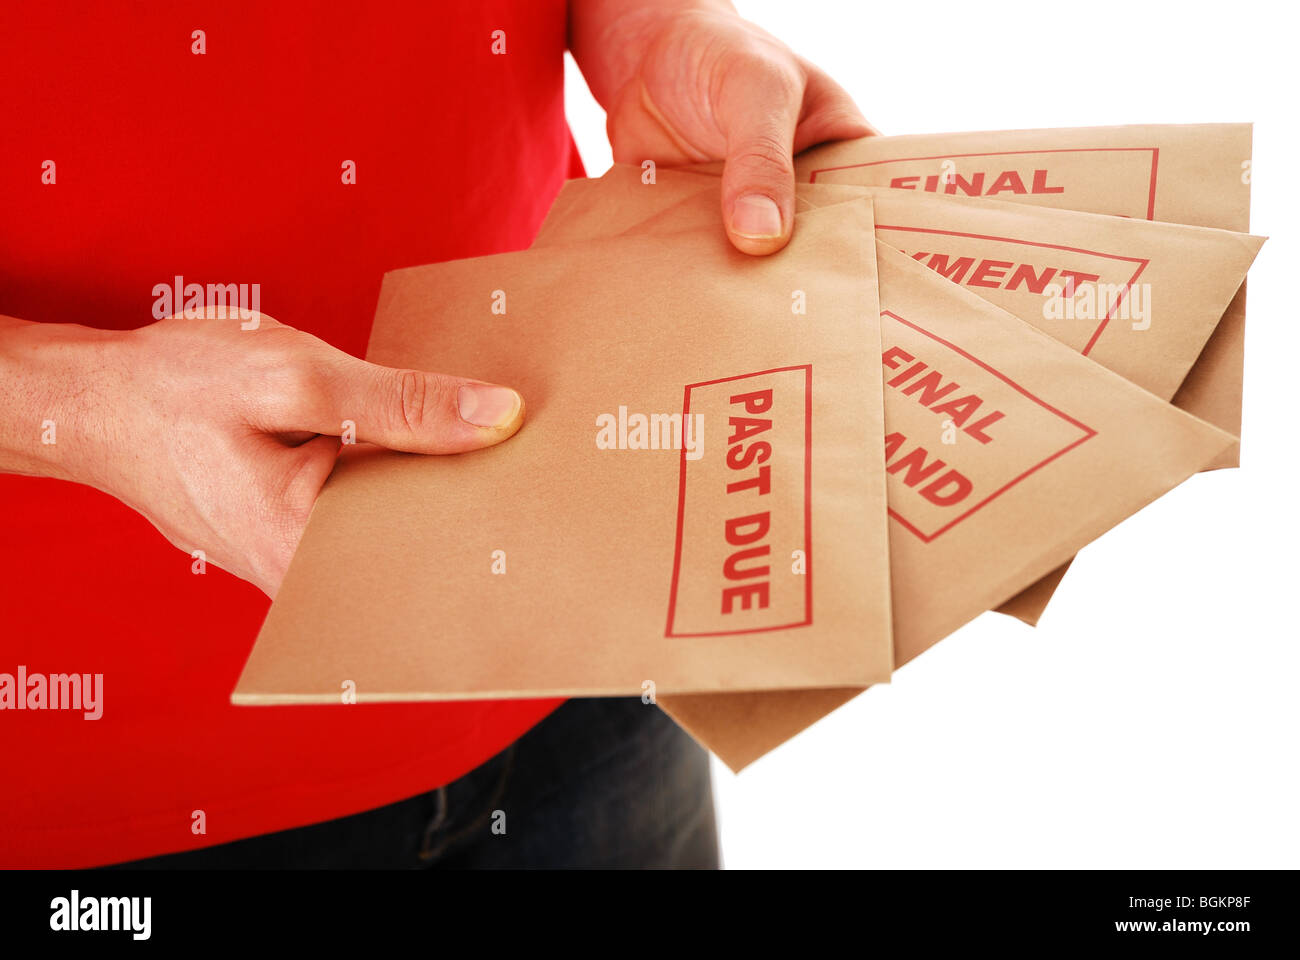 Final Demand - Stock Image